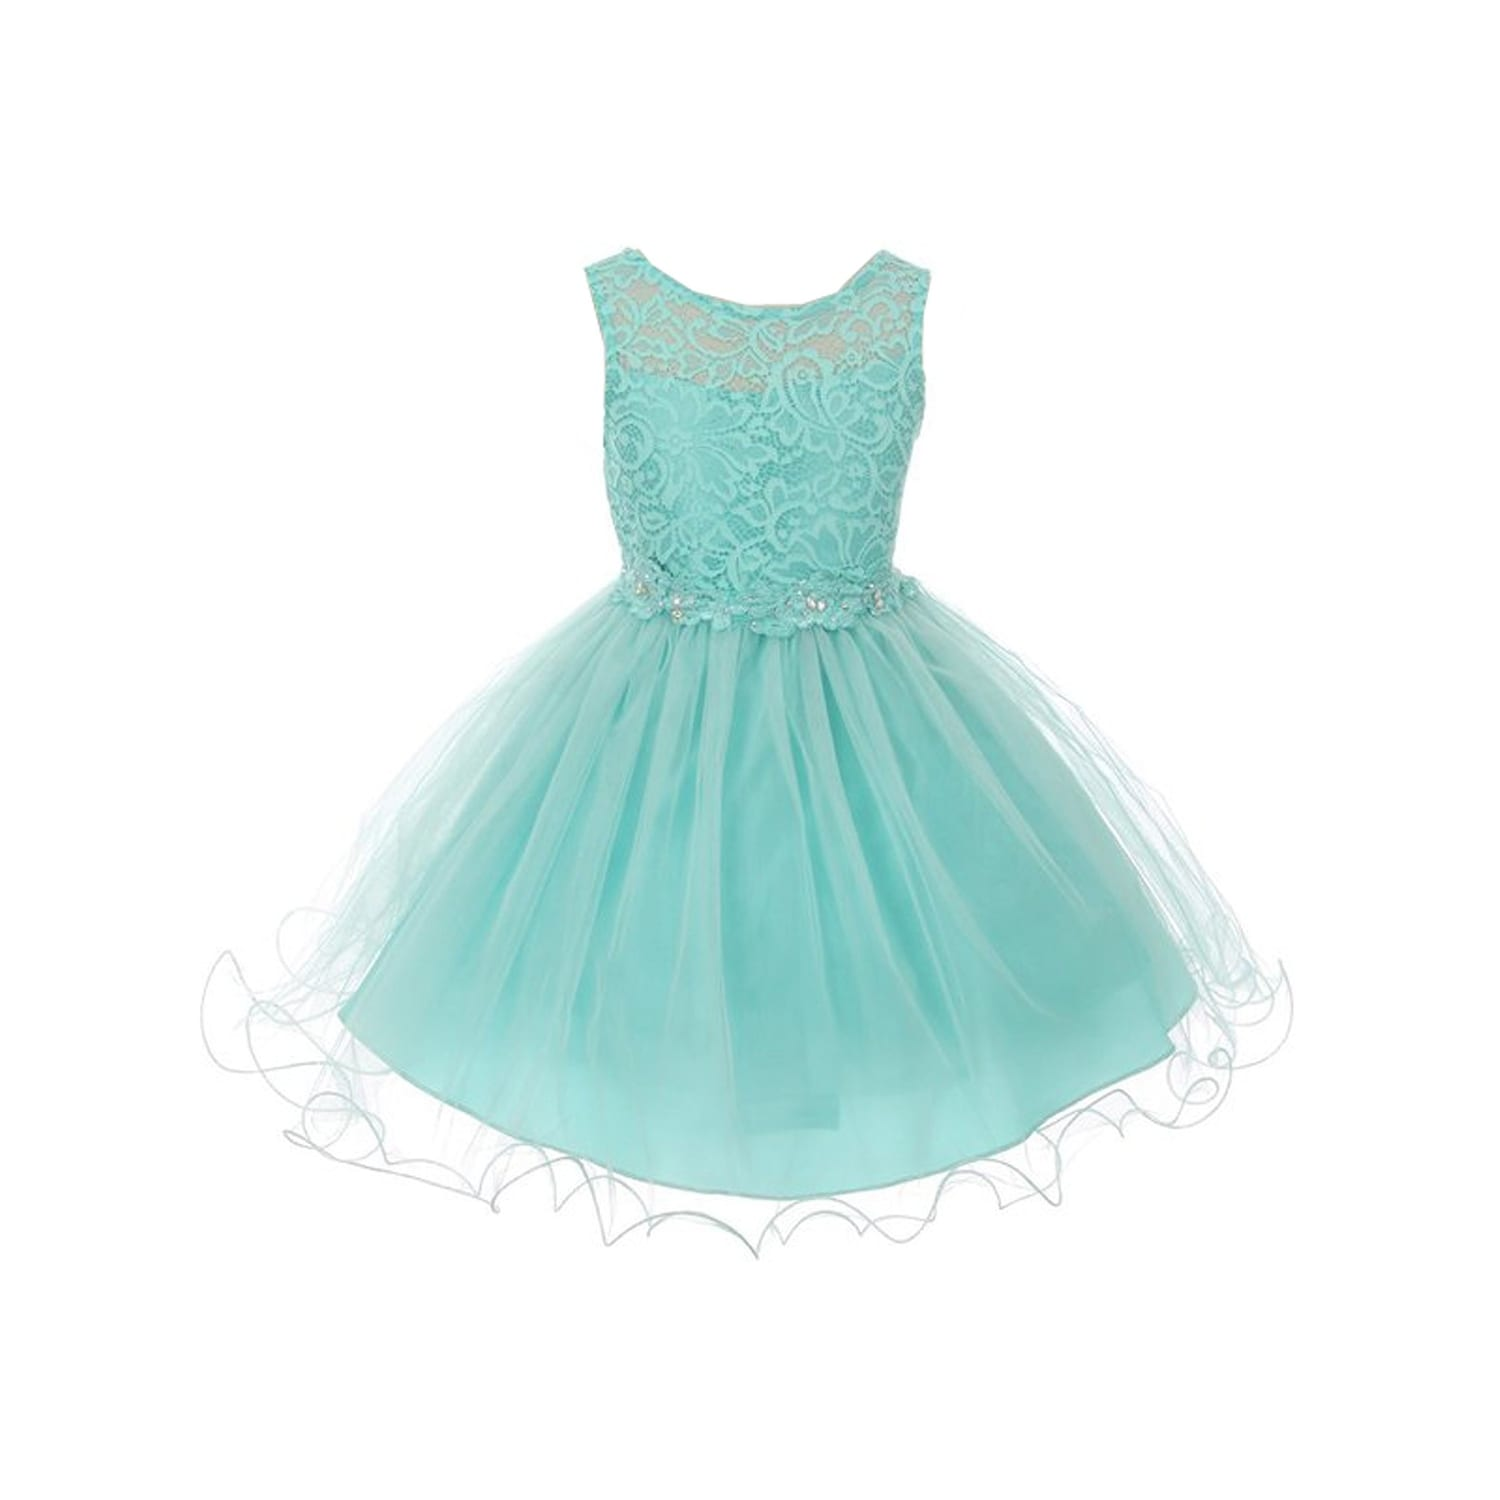 f86311e53e7 Shop Little Girls Aqua Floral Decorated Stretch Lace Tulle Flower Girl Dress  - Free Shipping Today - Overstock - 23082008